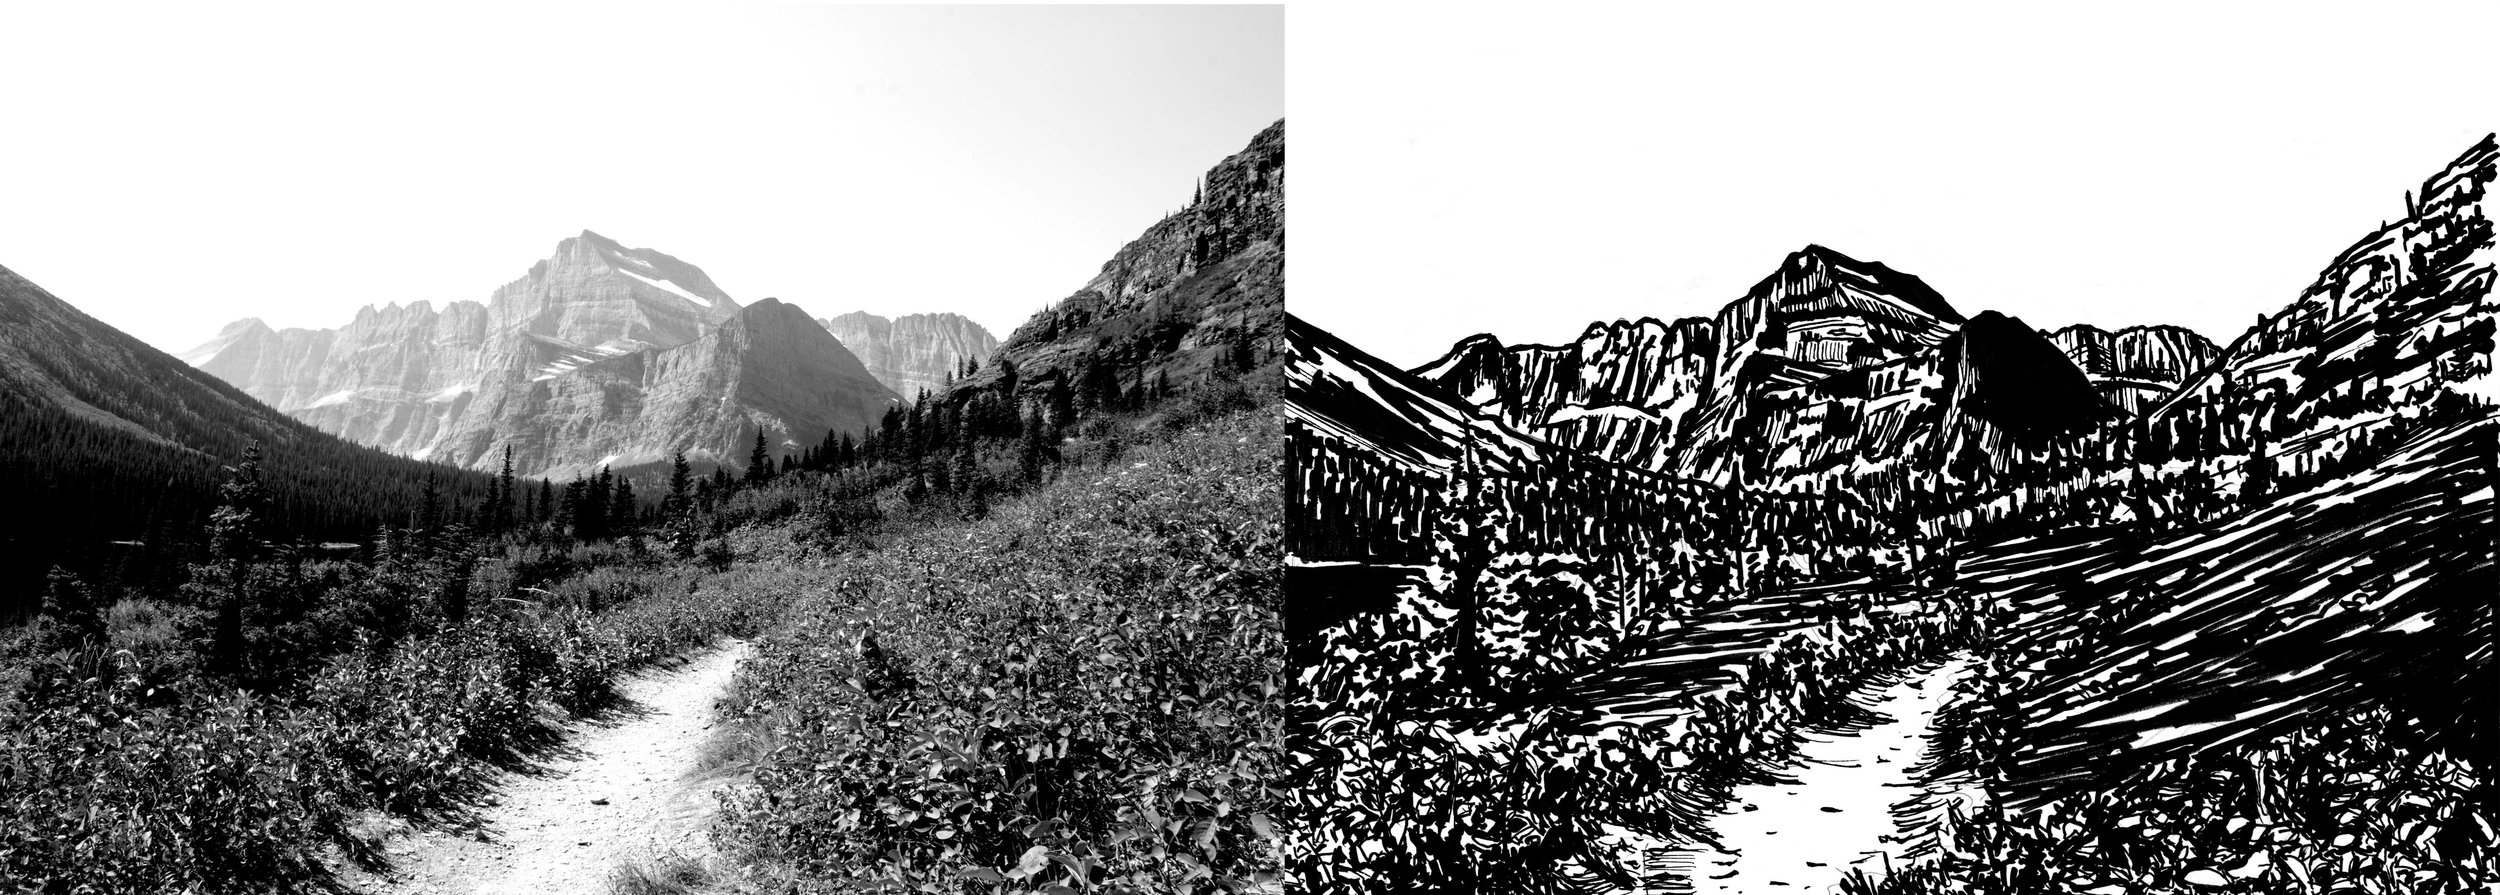 On the left is the photo I used for the print. I increased the black and white points to give more contrast. On the right is my finished ink drawing. I spend a lot of time on the drawing and treat it like its own piece of work too. This allows me to go into the carving process with a better grasp of the final  image.